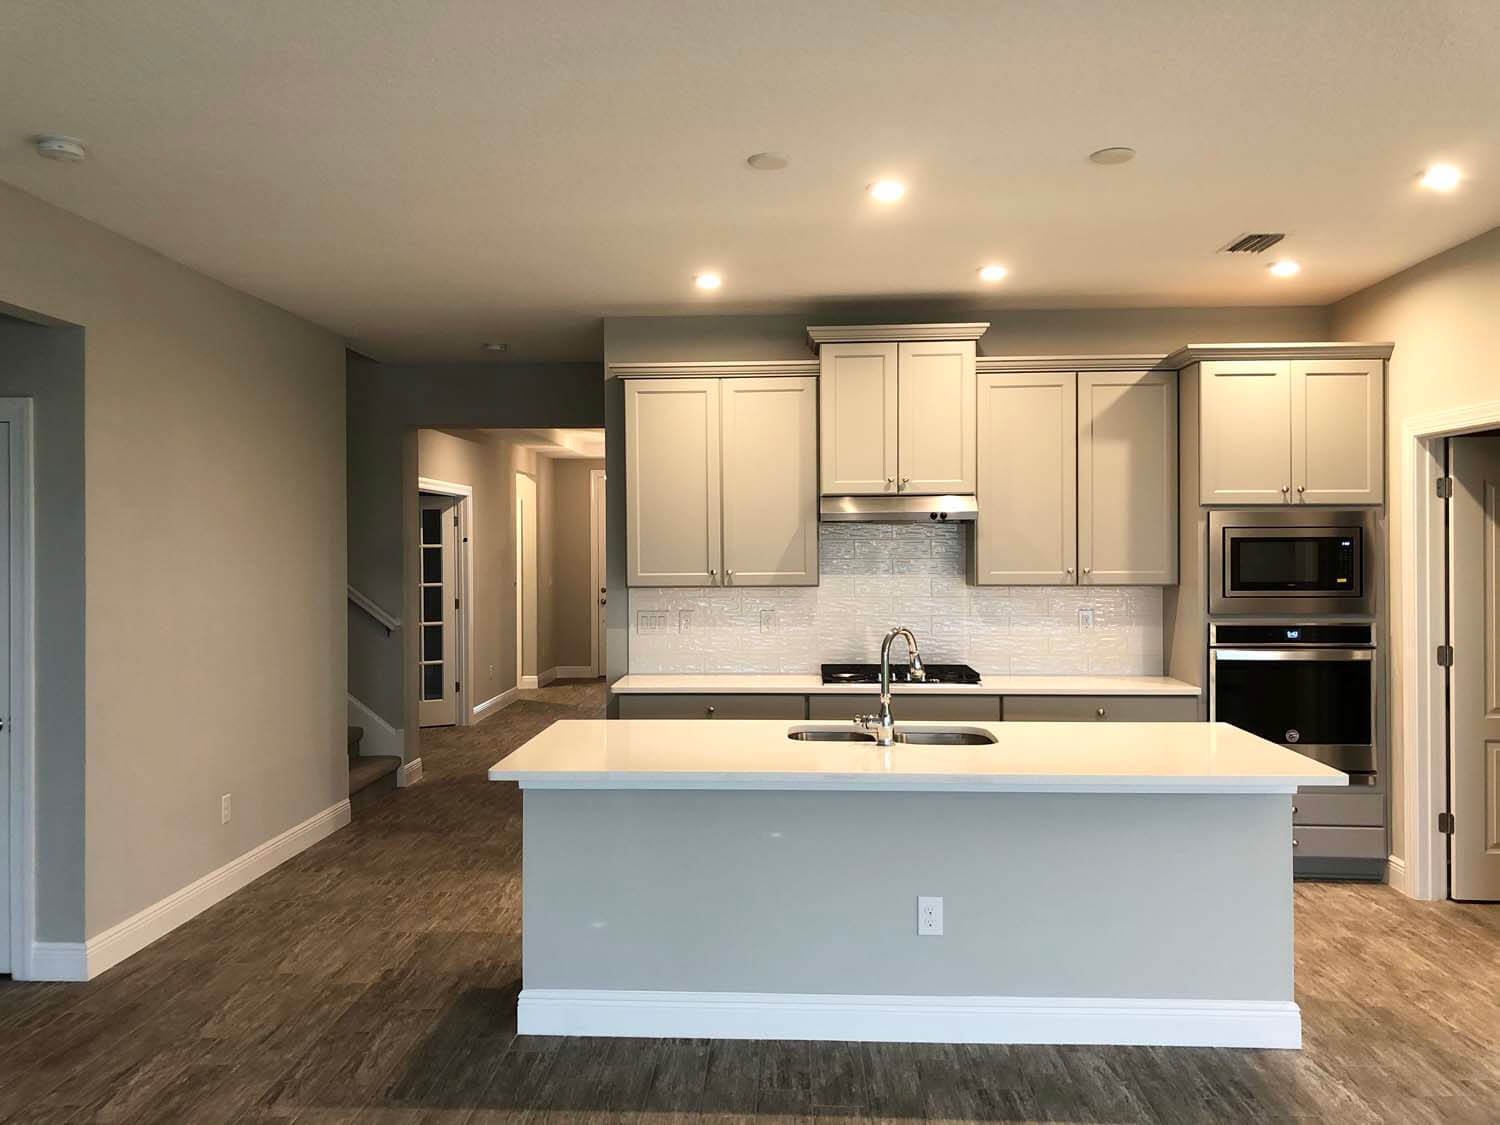 New Tampa Single Family Home Quick Possession Northwood 2 in Waterset, located at 5432 Silver Sun Dr, Apollo Beach 33572 (LOT 15) Built By Cardel Homes Tampa